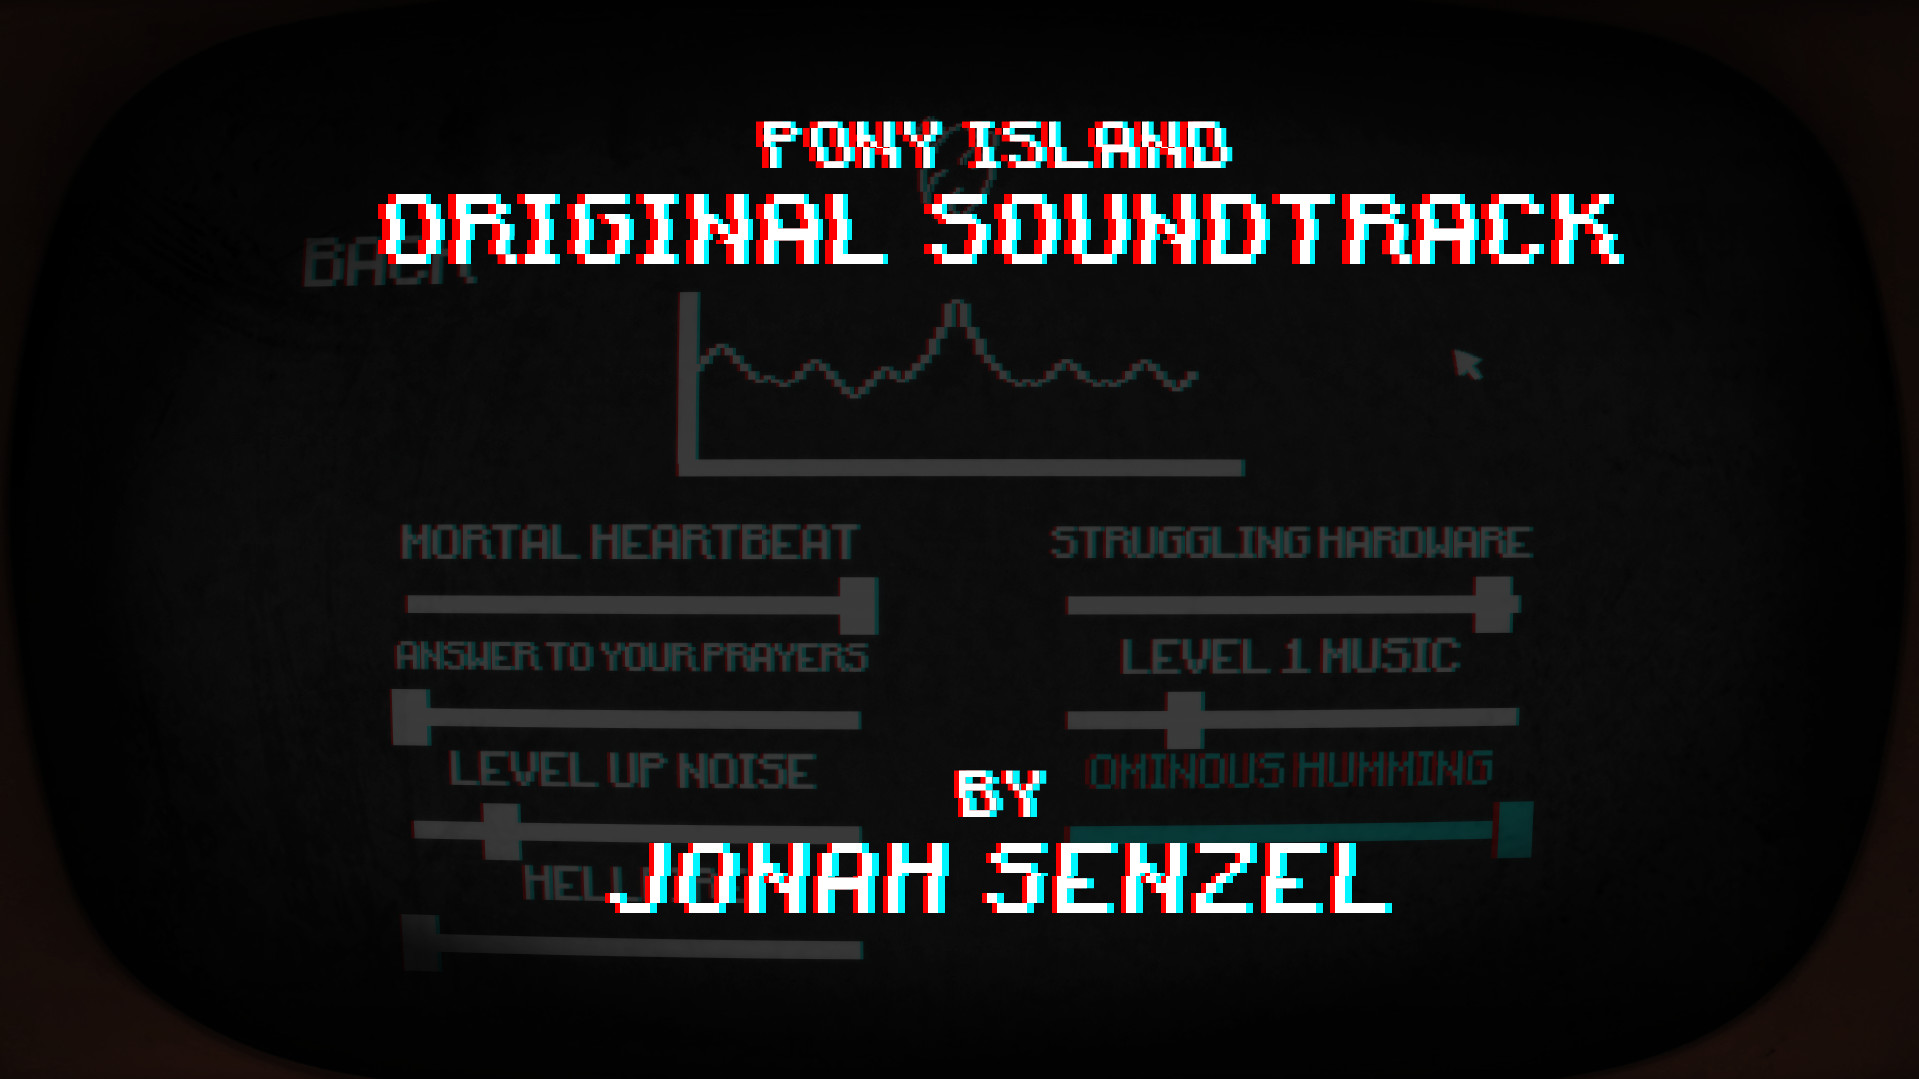 Have you played Pony Island, UNDERTALE, Hotline Miami